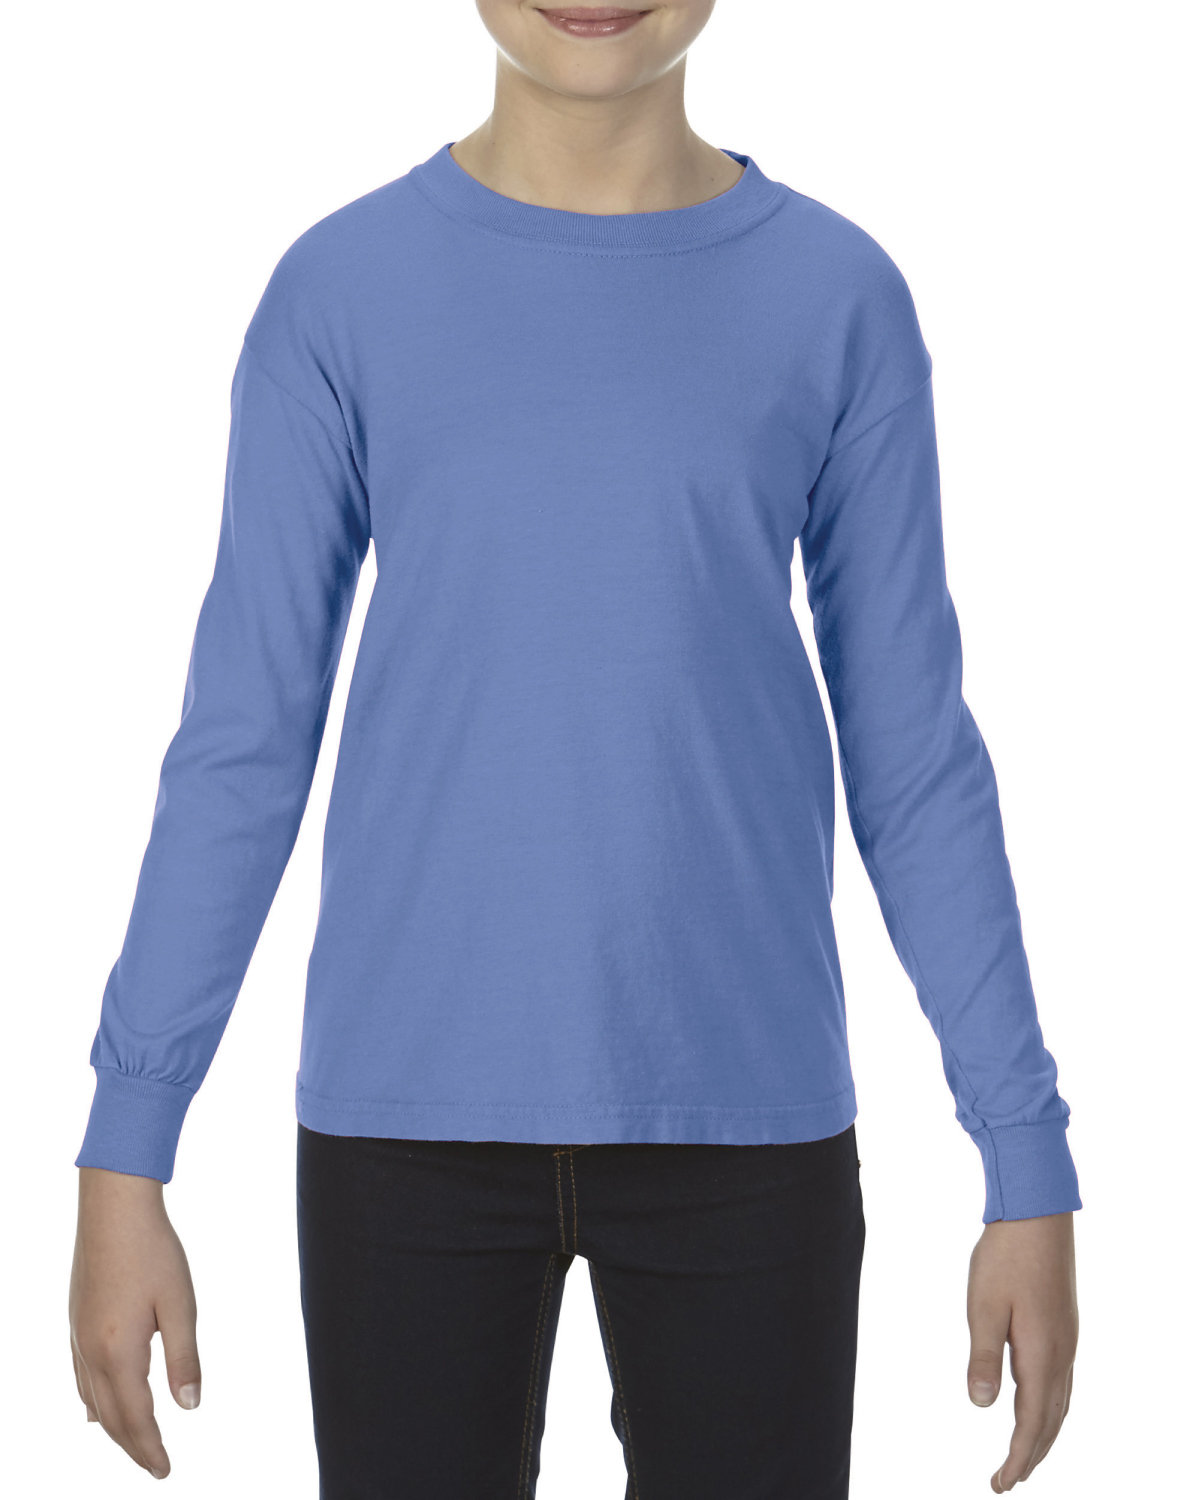 Youth 5.4 oz. Garment-Dyed Long-Sleeve T-Shirt